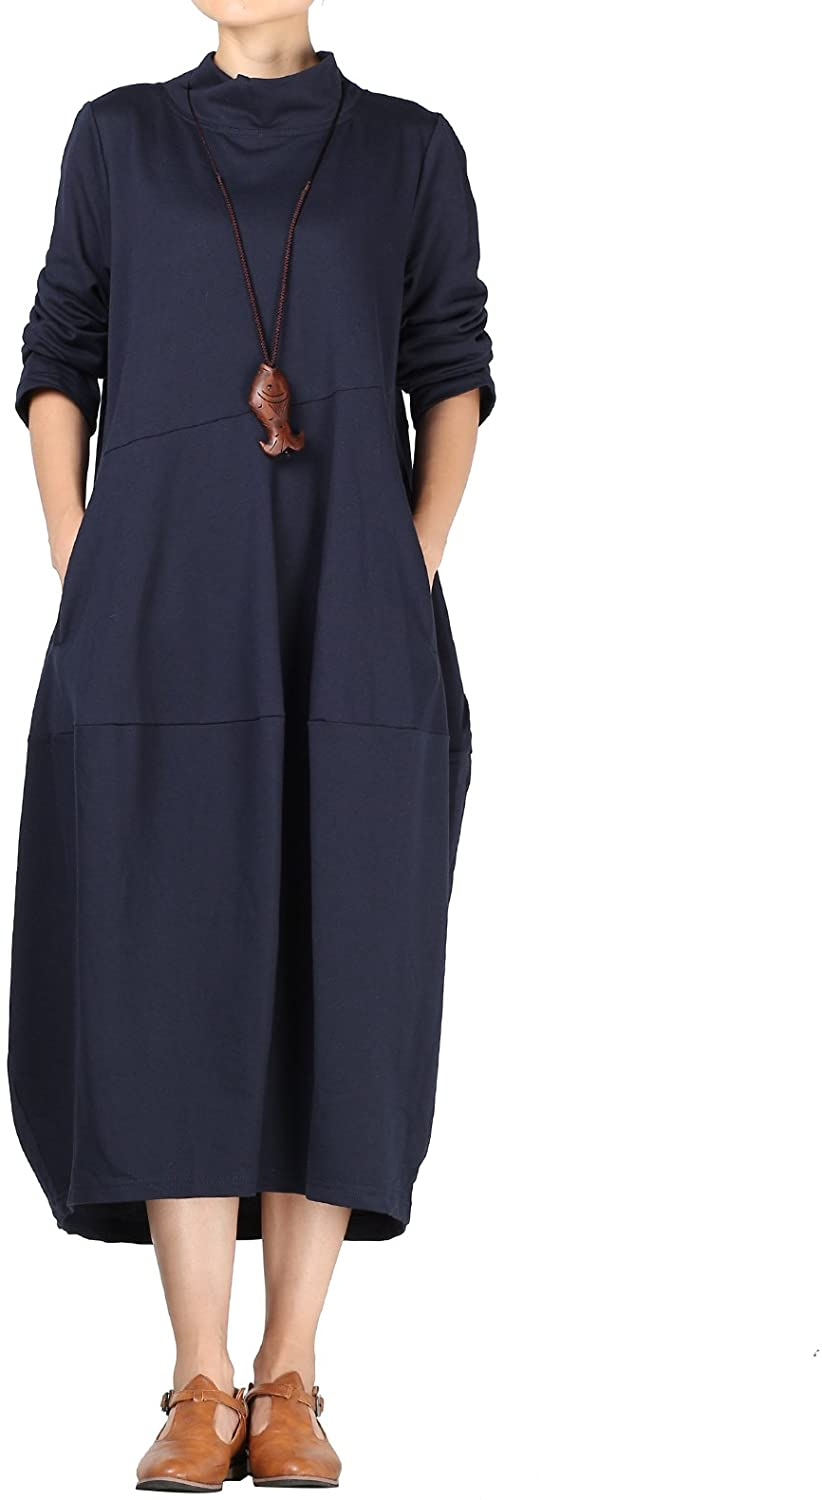 Mordenmiss Women's Autumn Turtleneck Long Baggy Dress with Pockets